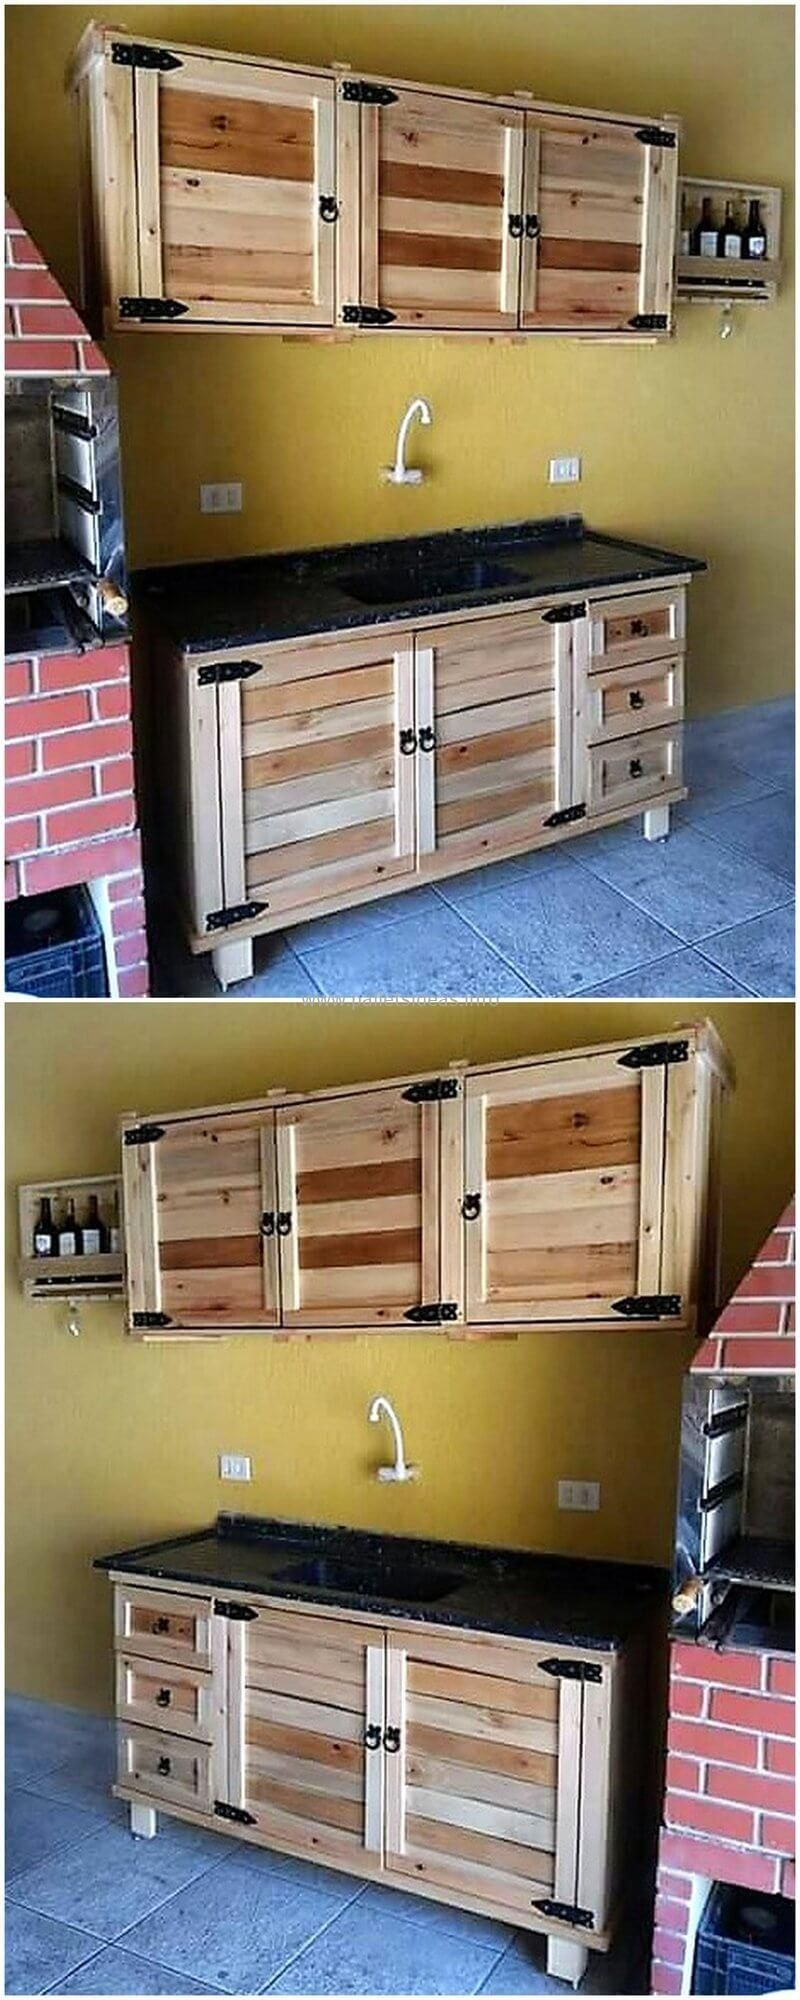 Awesome wood pallet repurposing and reusing ideas with